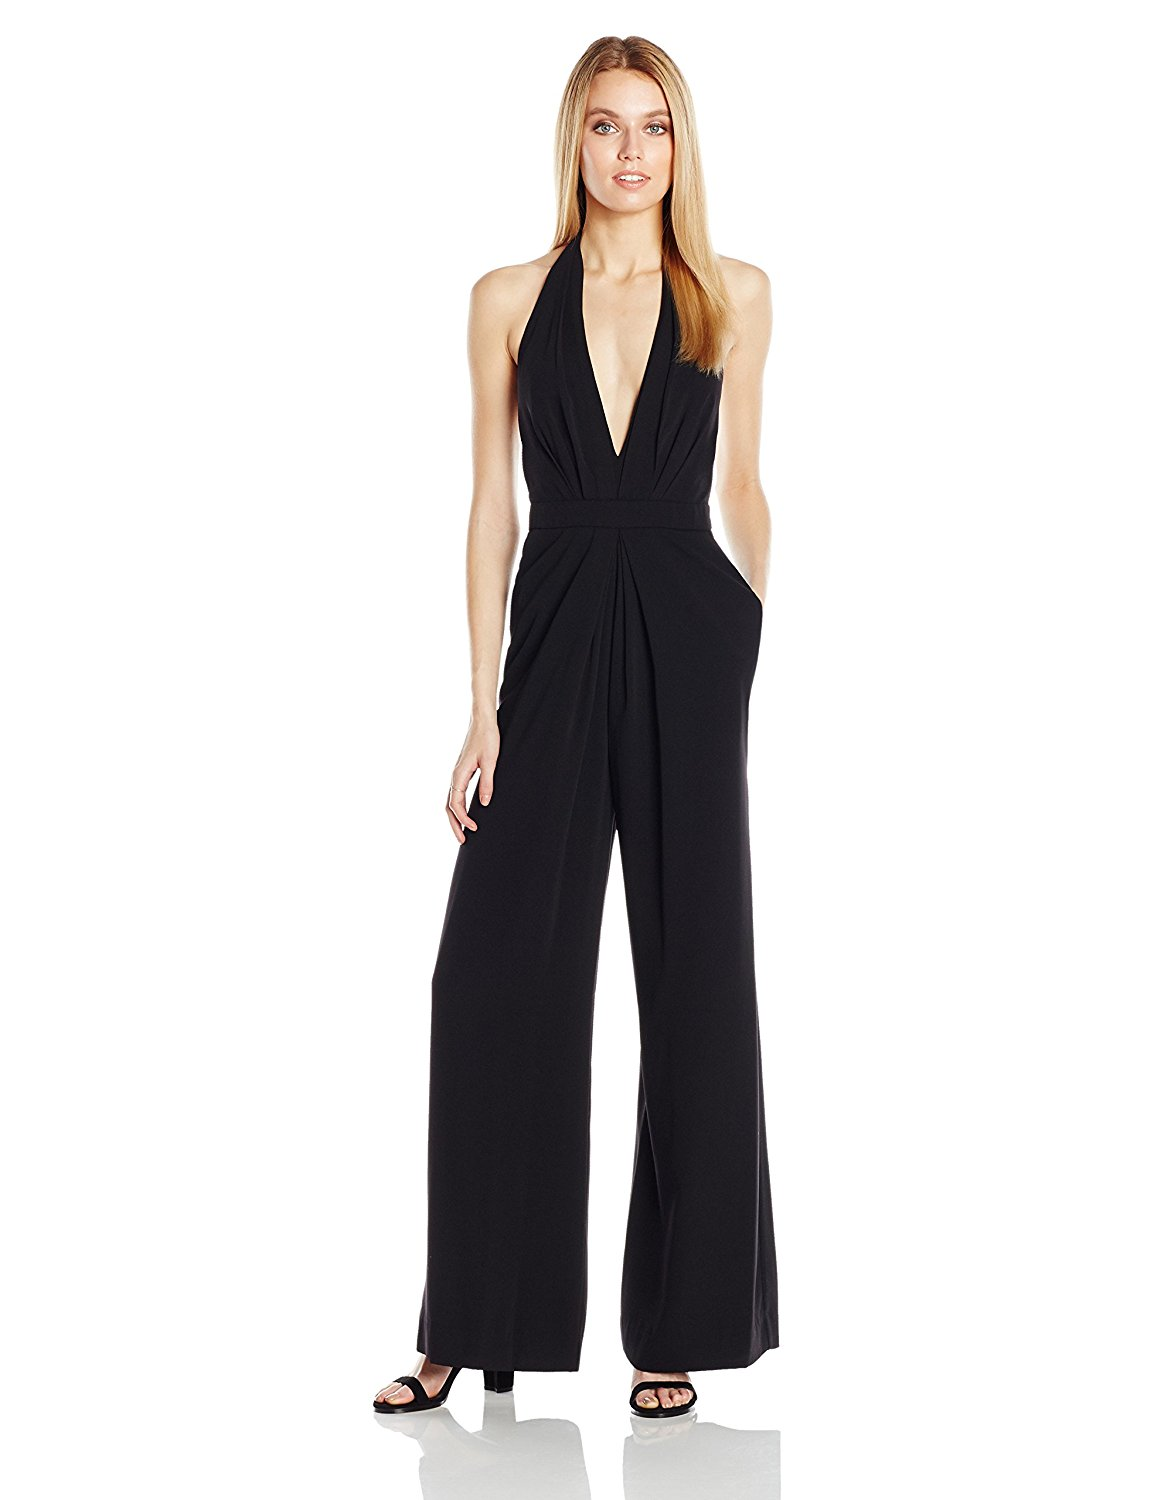 Customize Made Womens Halter Deep V Jumpsuit 2017 Summer New Fashion Solid Color Sleeveless Slim Sexy Casual Plus Size Jumpsuits